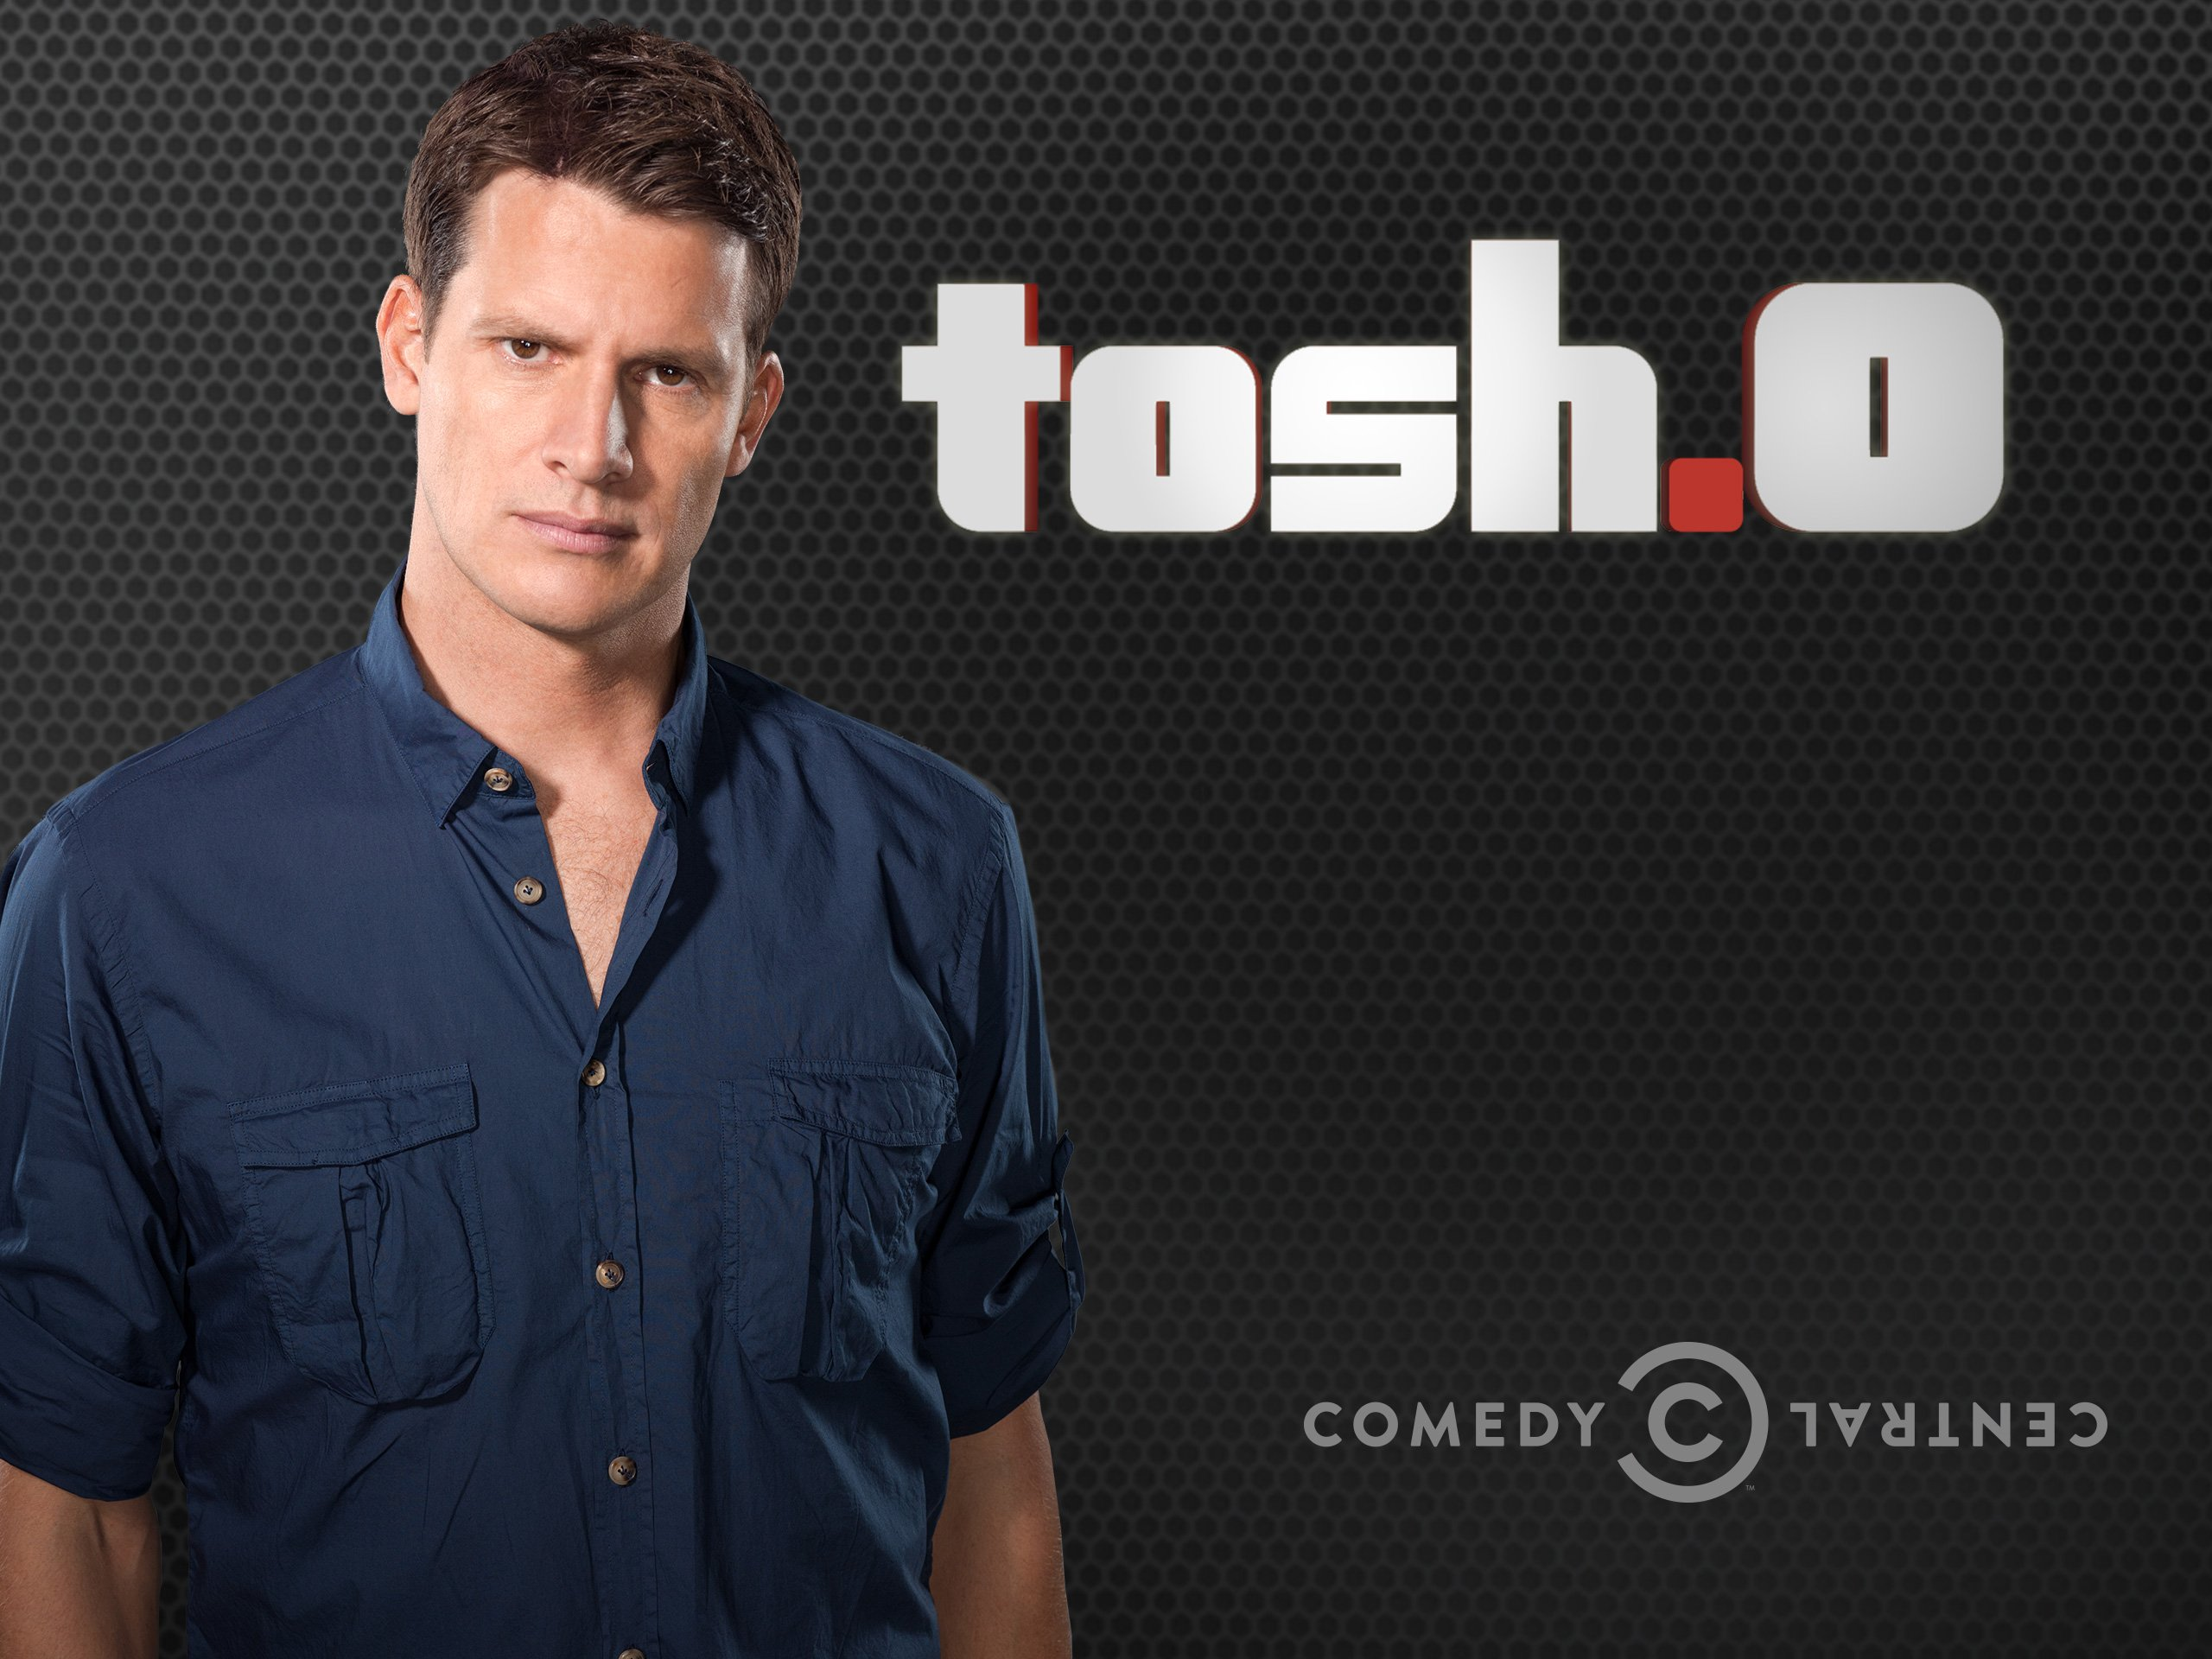 For tosh 0 big ass video really. agree